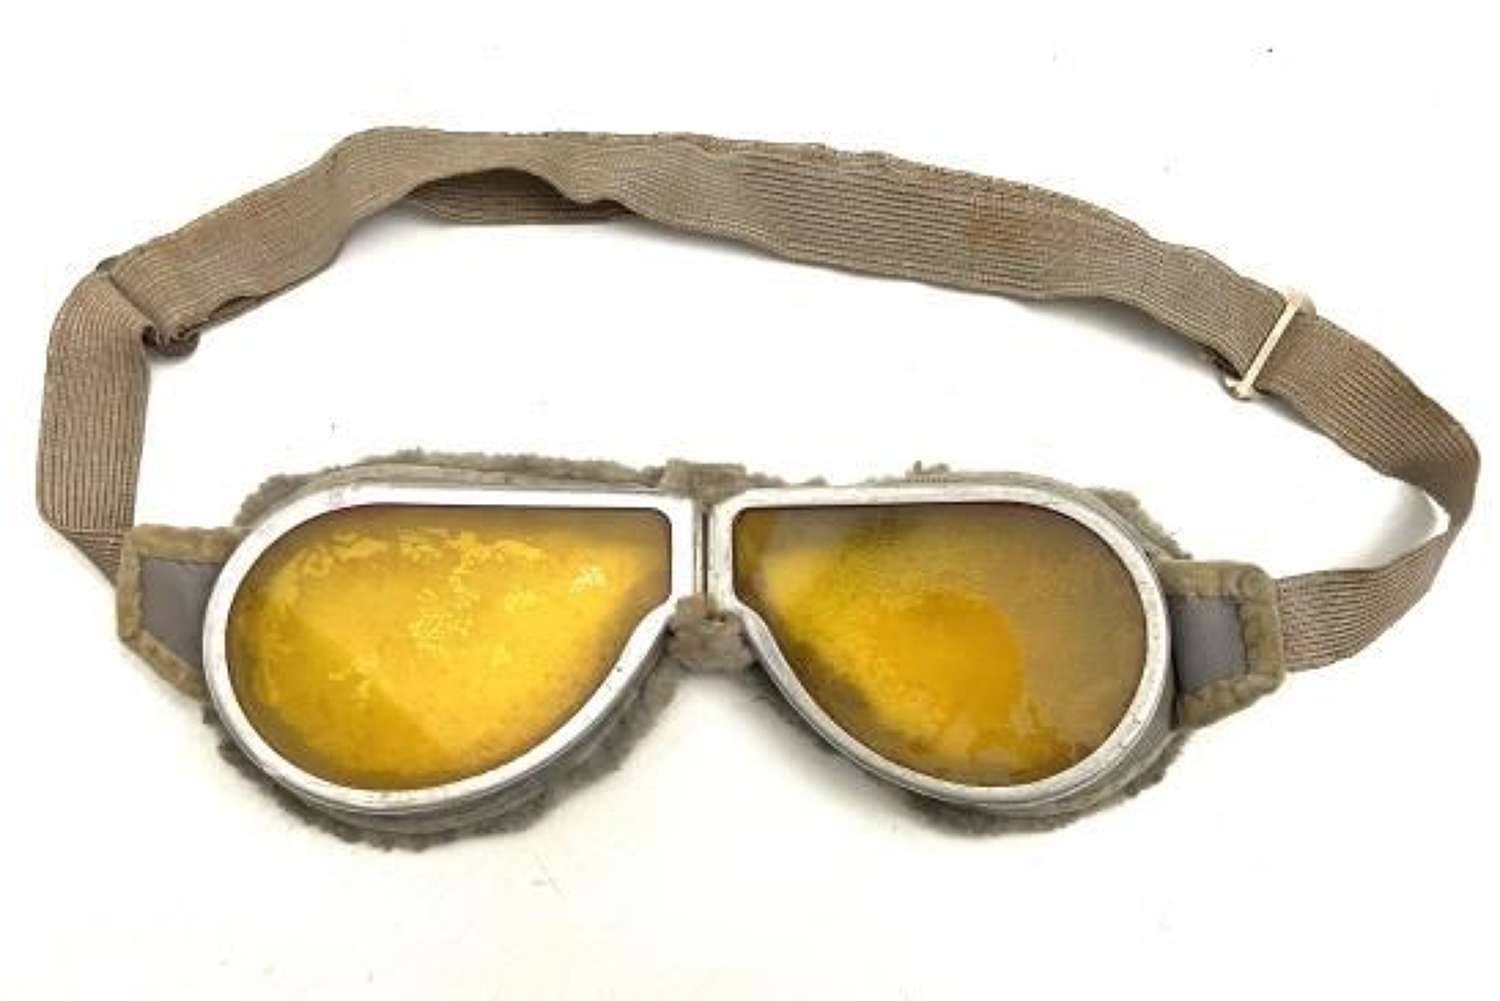 Original Early WW2 British Army MT Goggles - Yellow Lenses